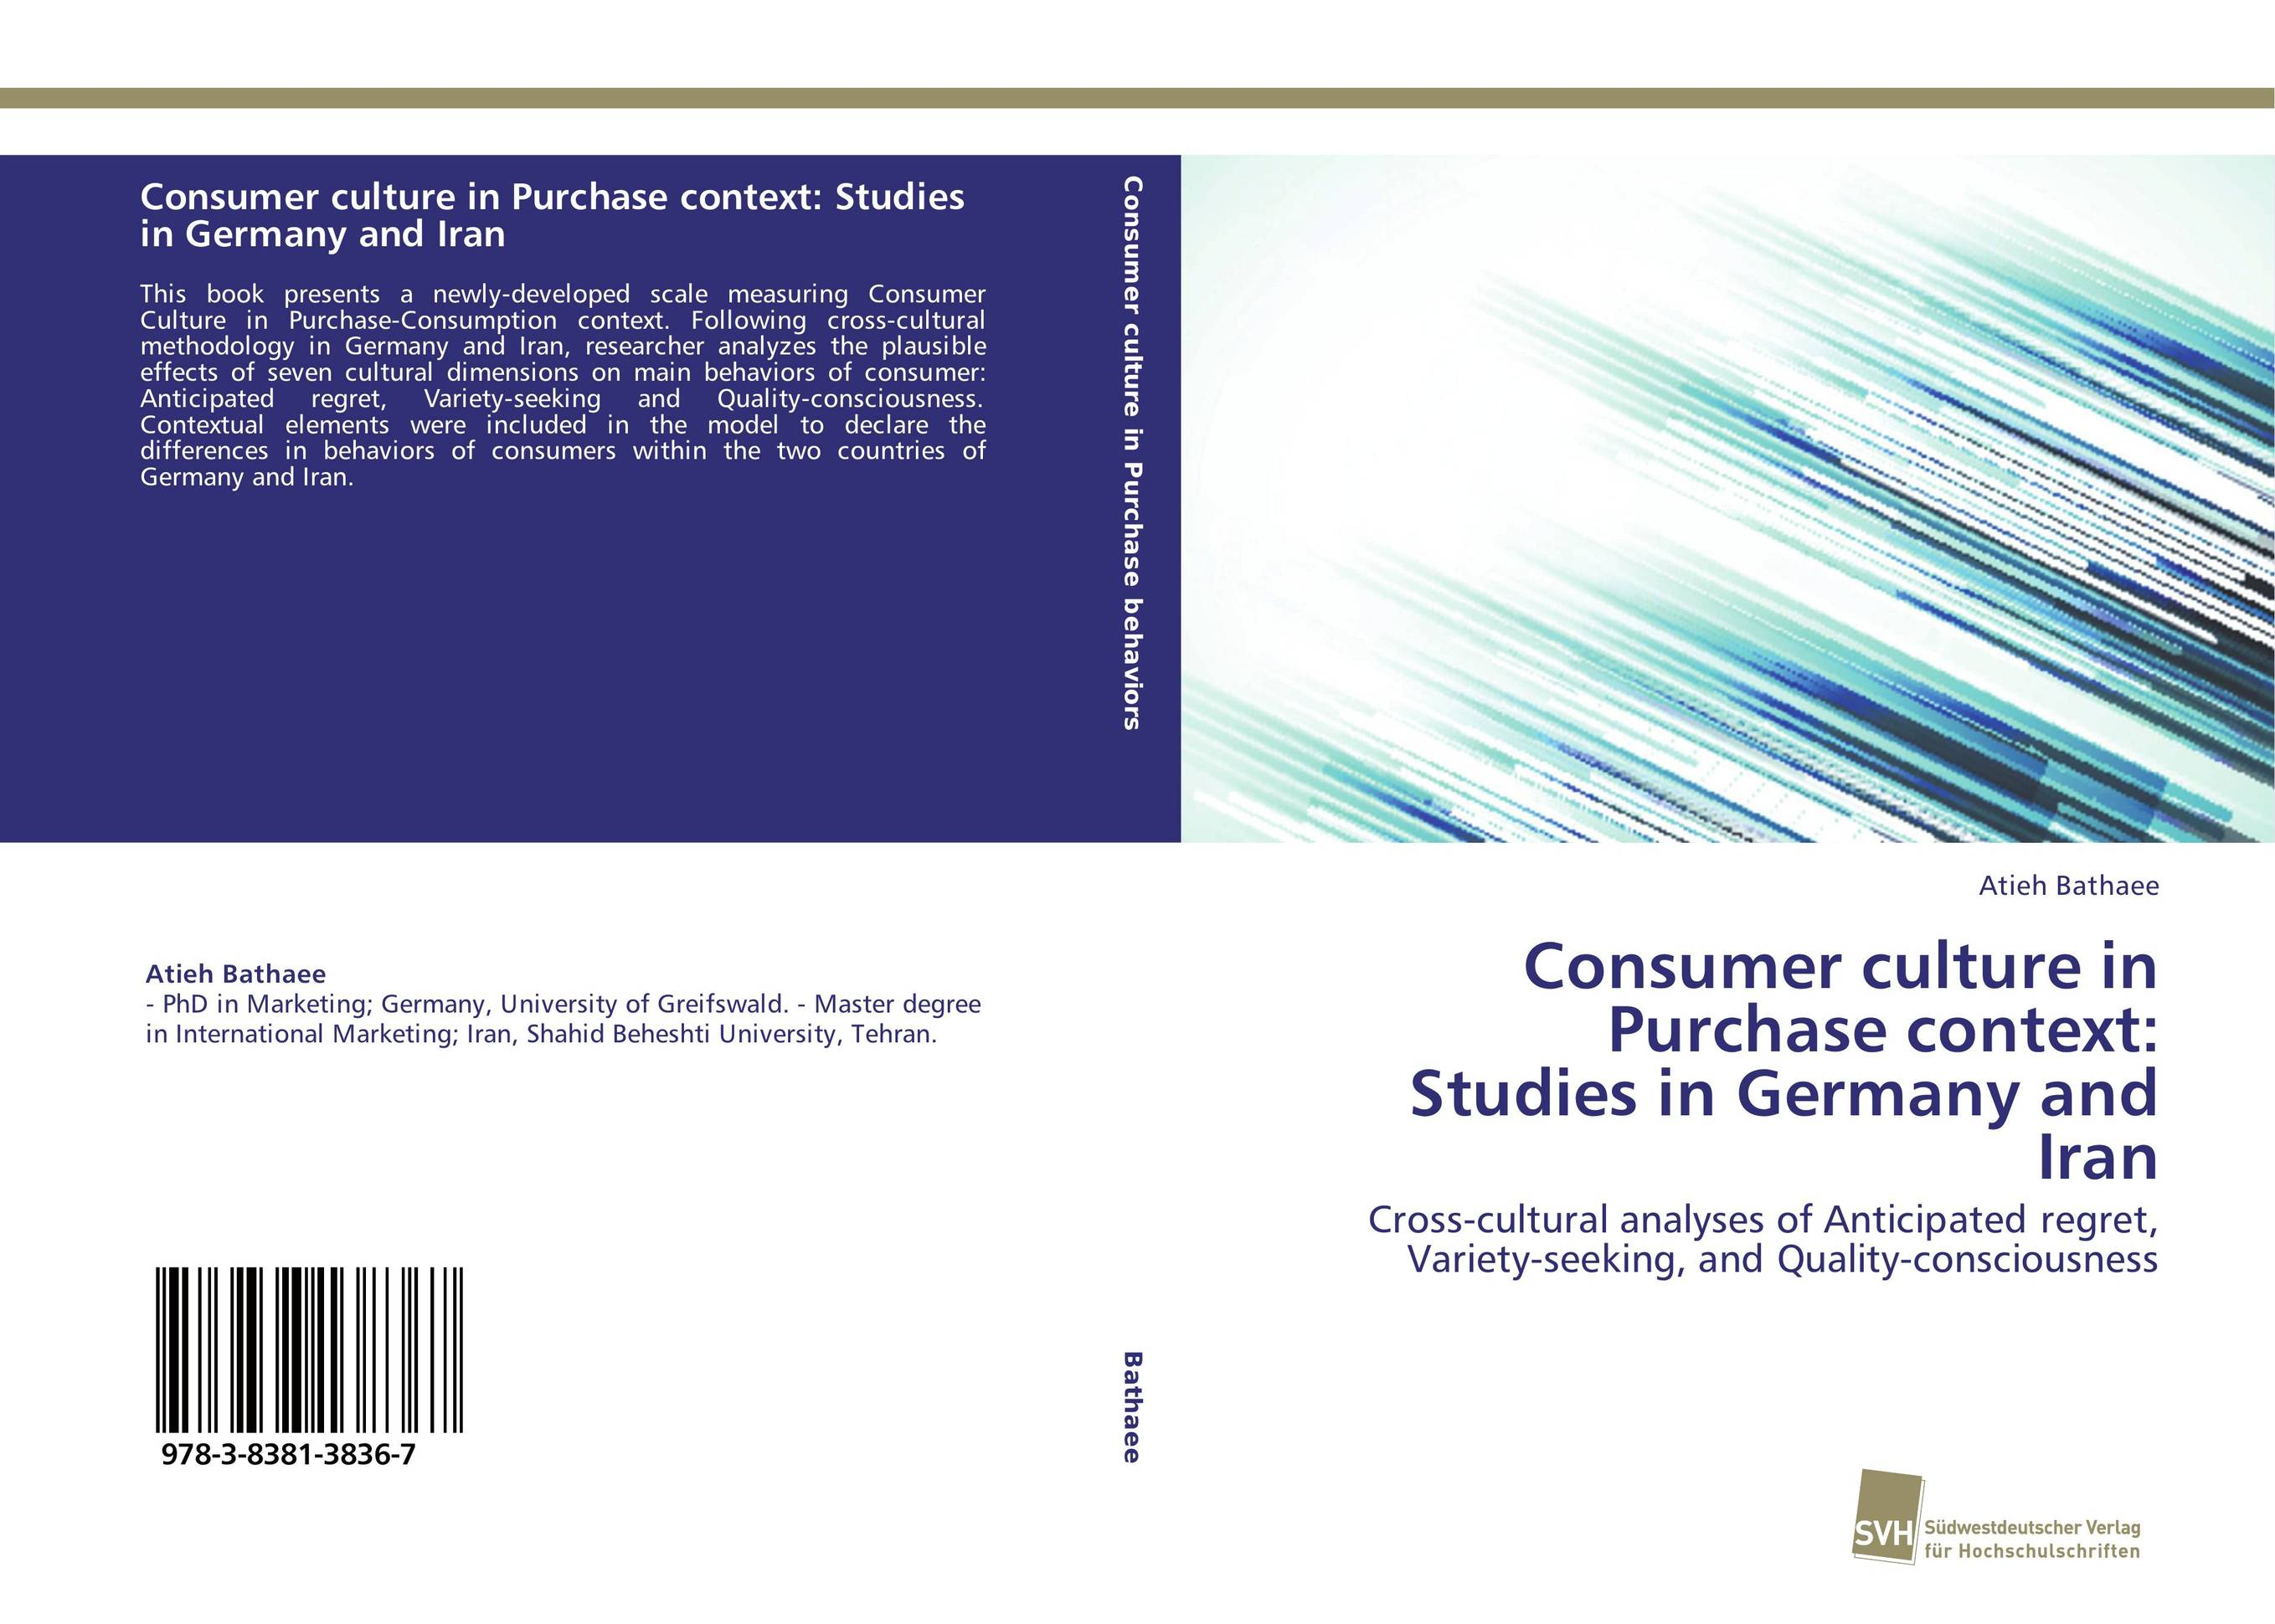 Consumer culture in Purchase context: Studies in Germany and Iran art education in iran